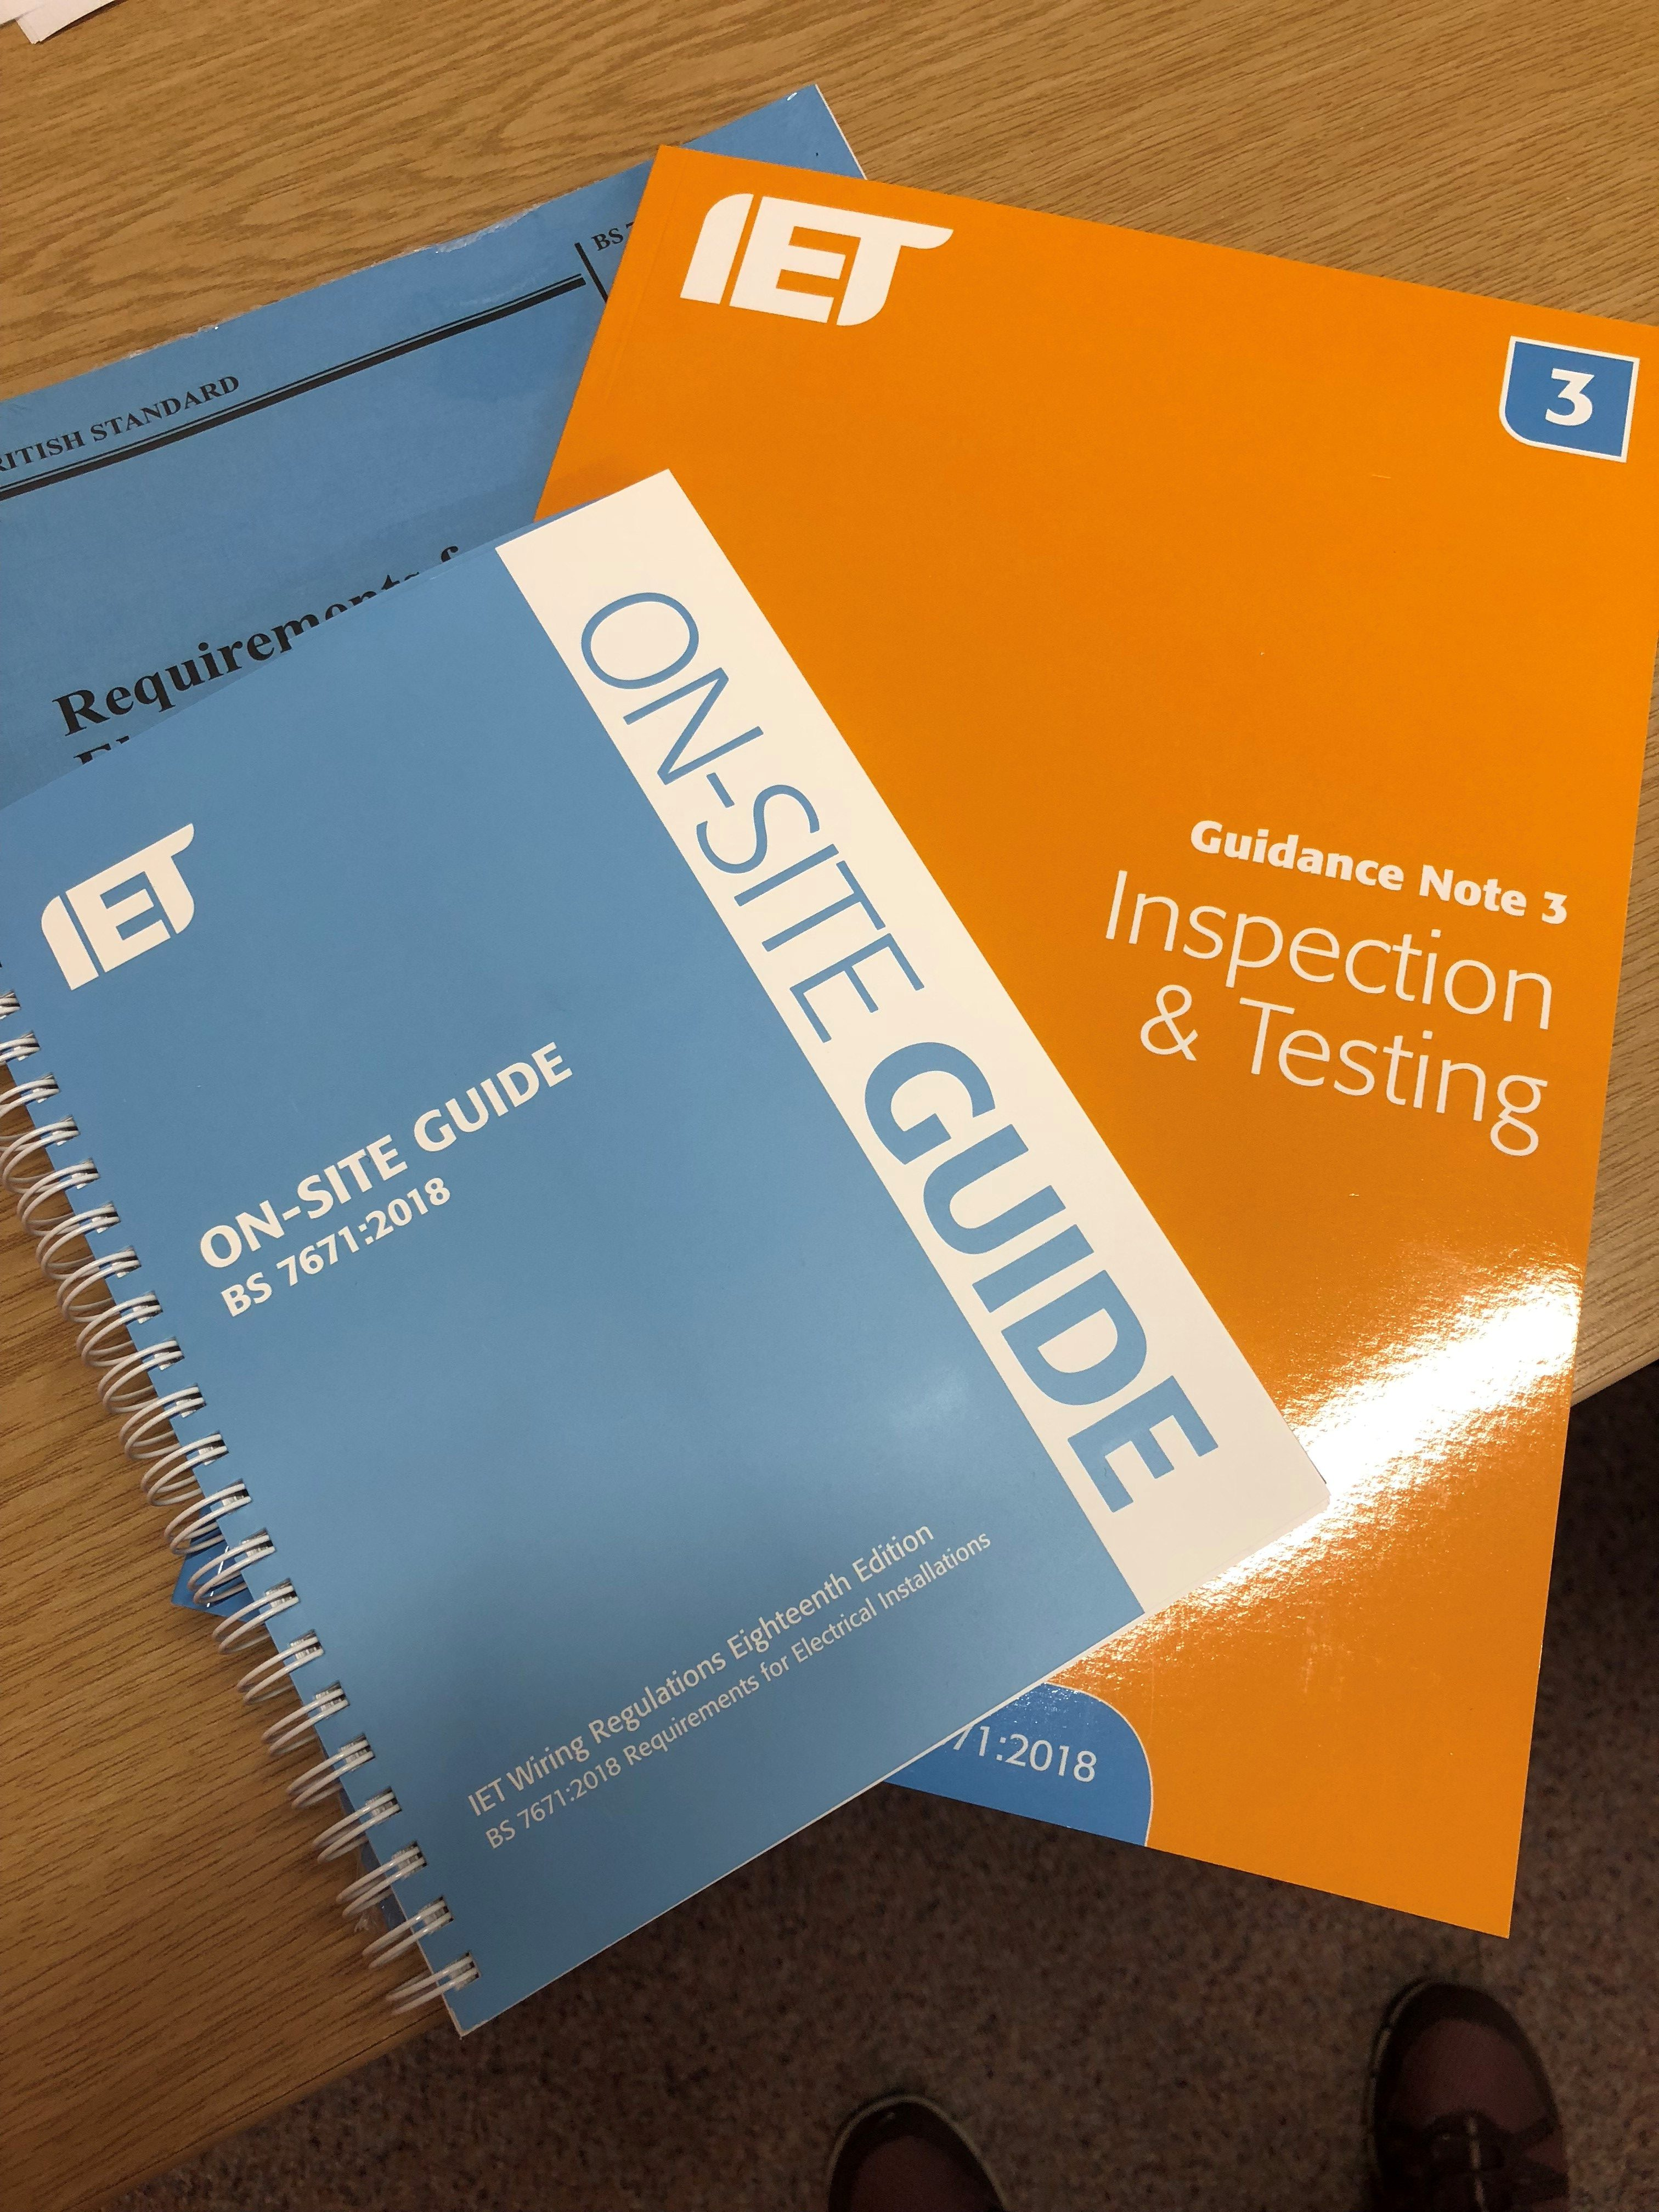 Book Bundle Bs 7671 Guidance Note 3 On Site Guide Proactive Technical Training